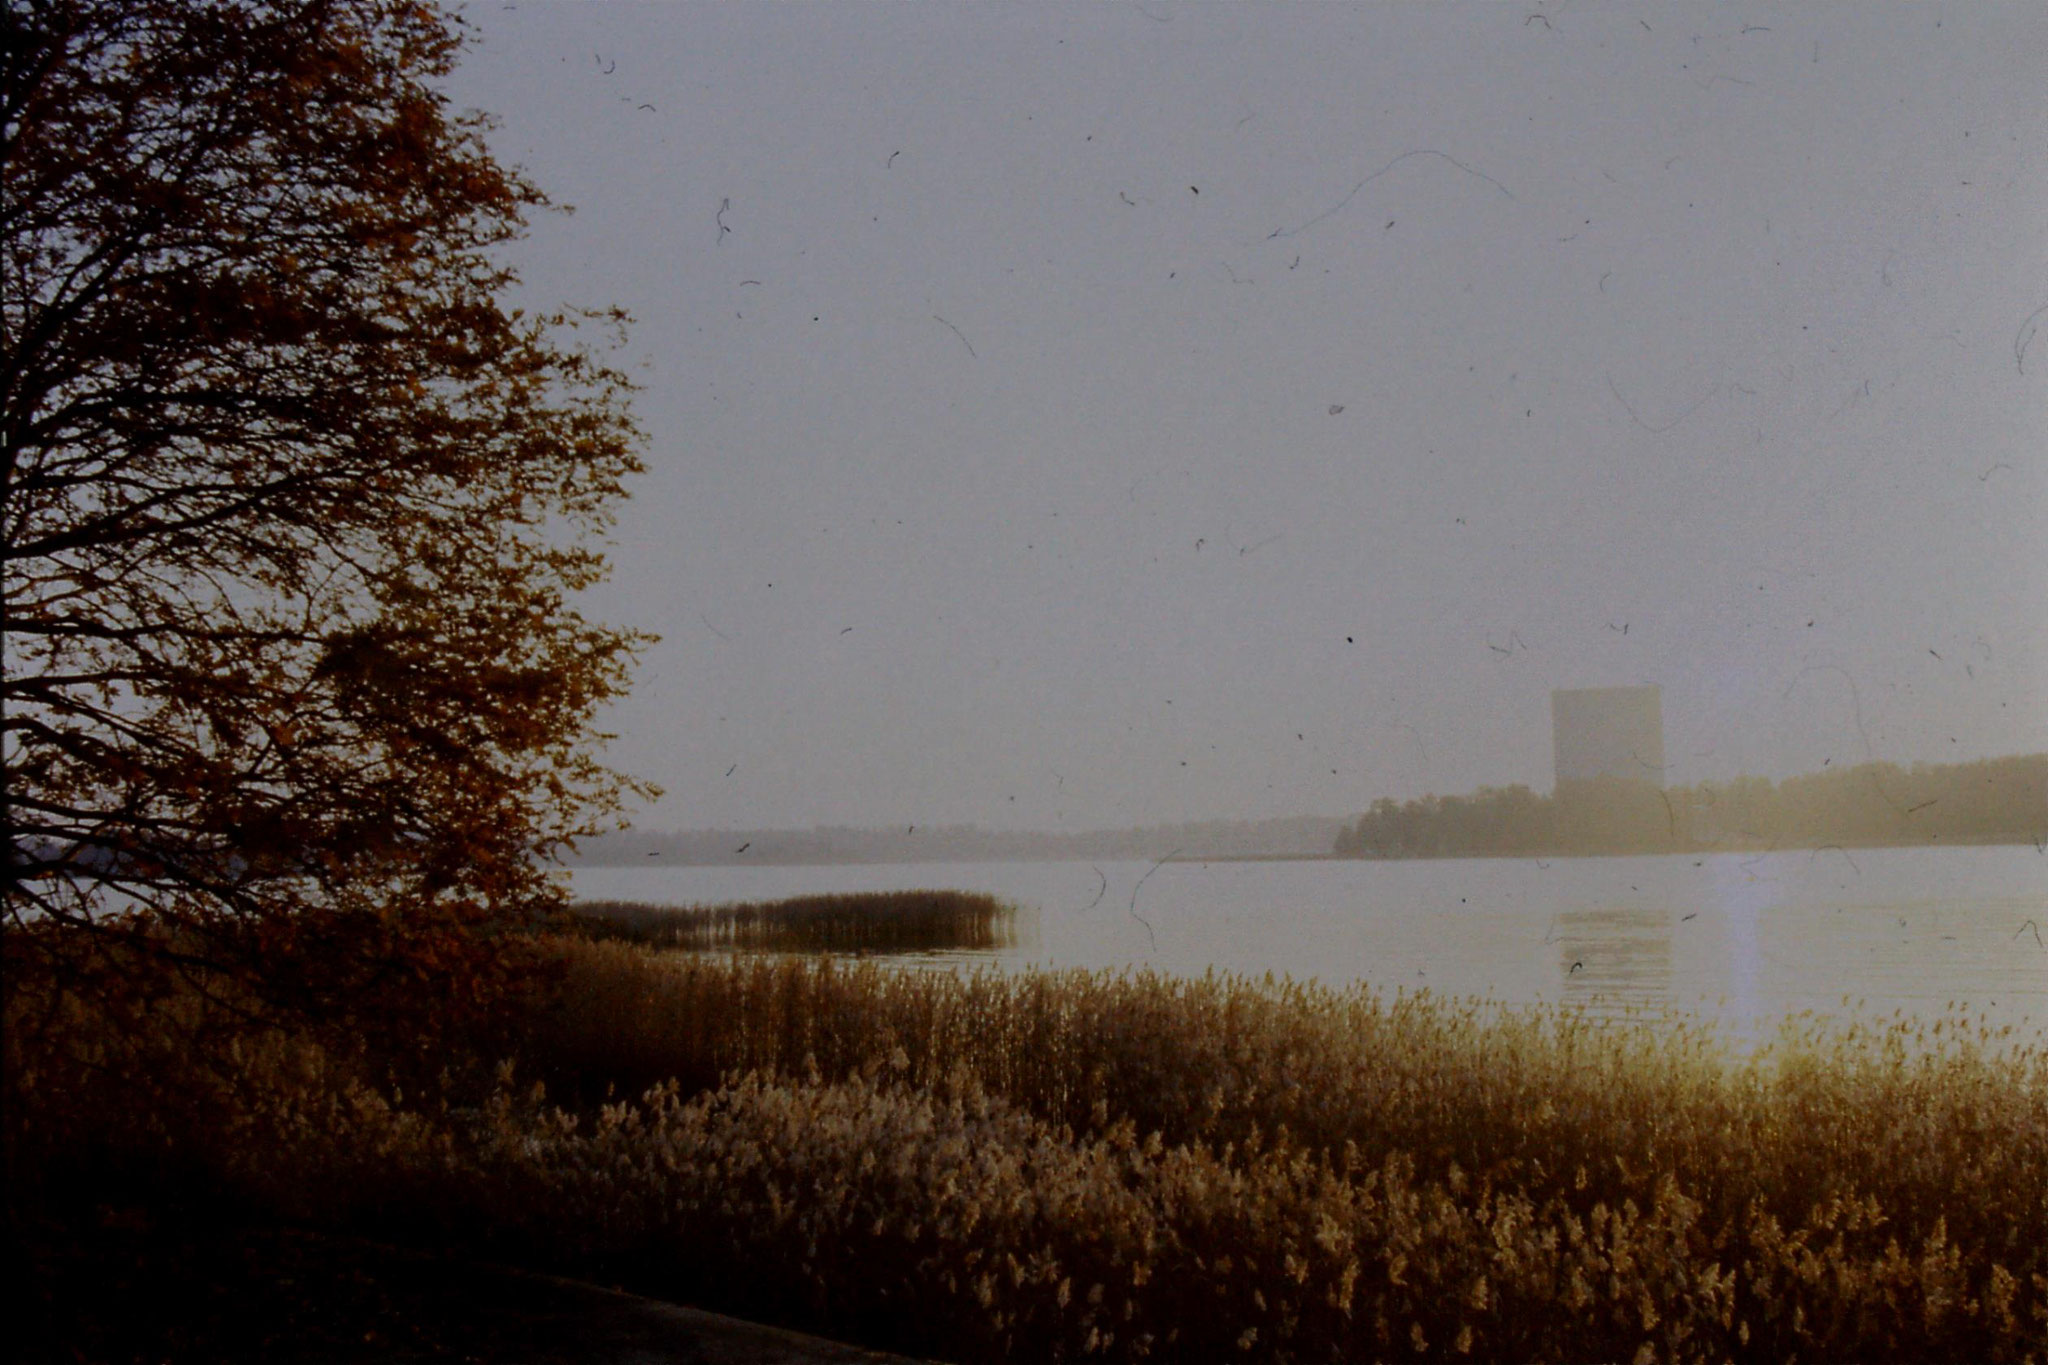 5/10/1988: 3: looking south from Otaniemi